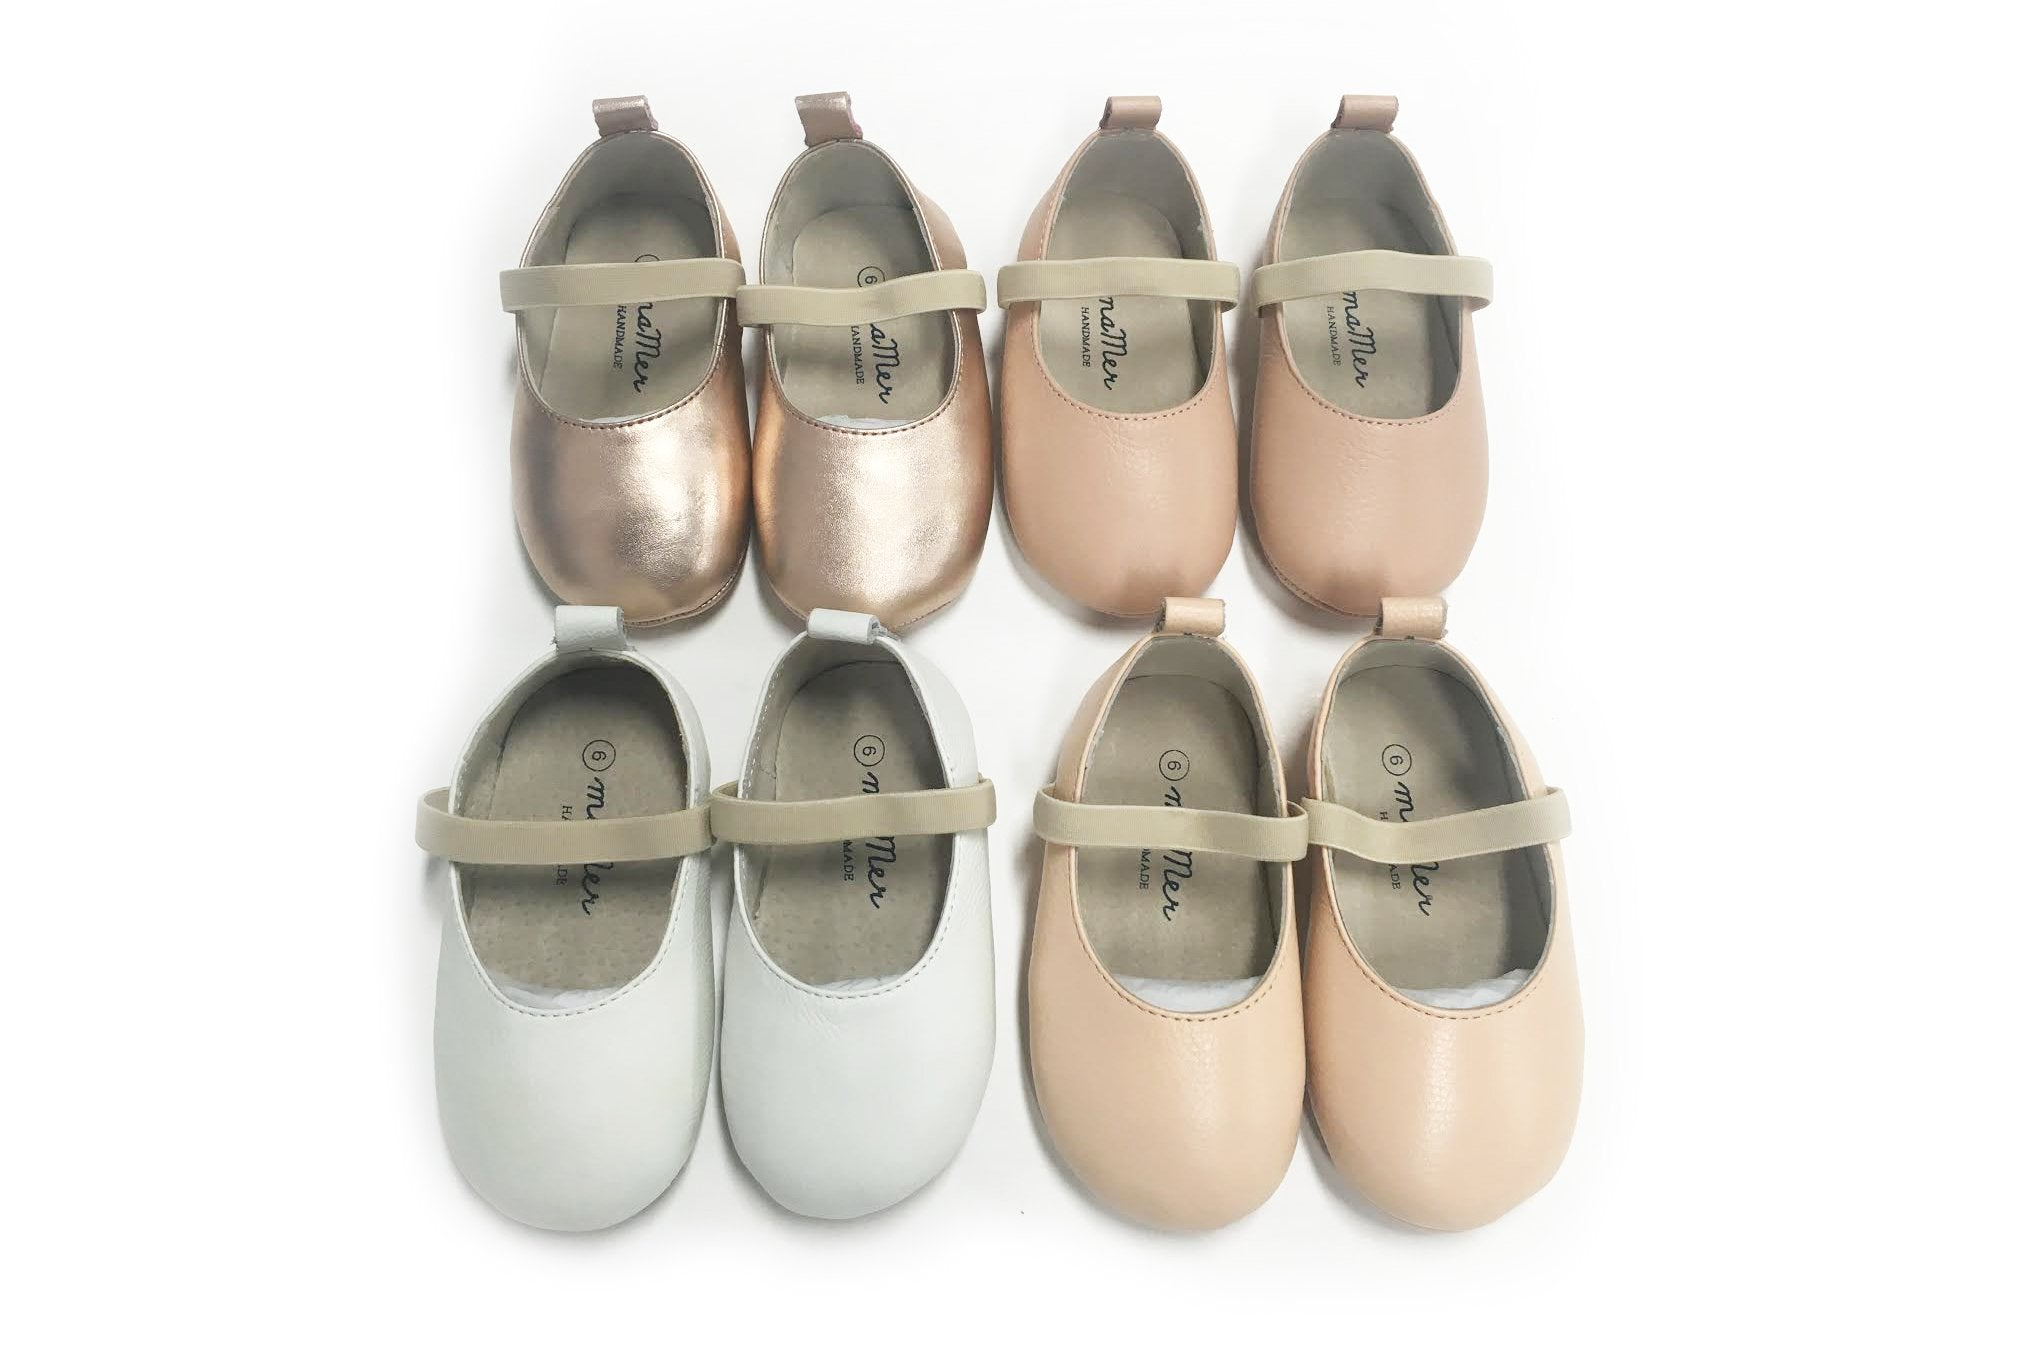 Capri Ballet Shoes - handmade from soft leather: SIZE AU5 and AU6 ONLY LEFT